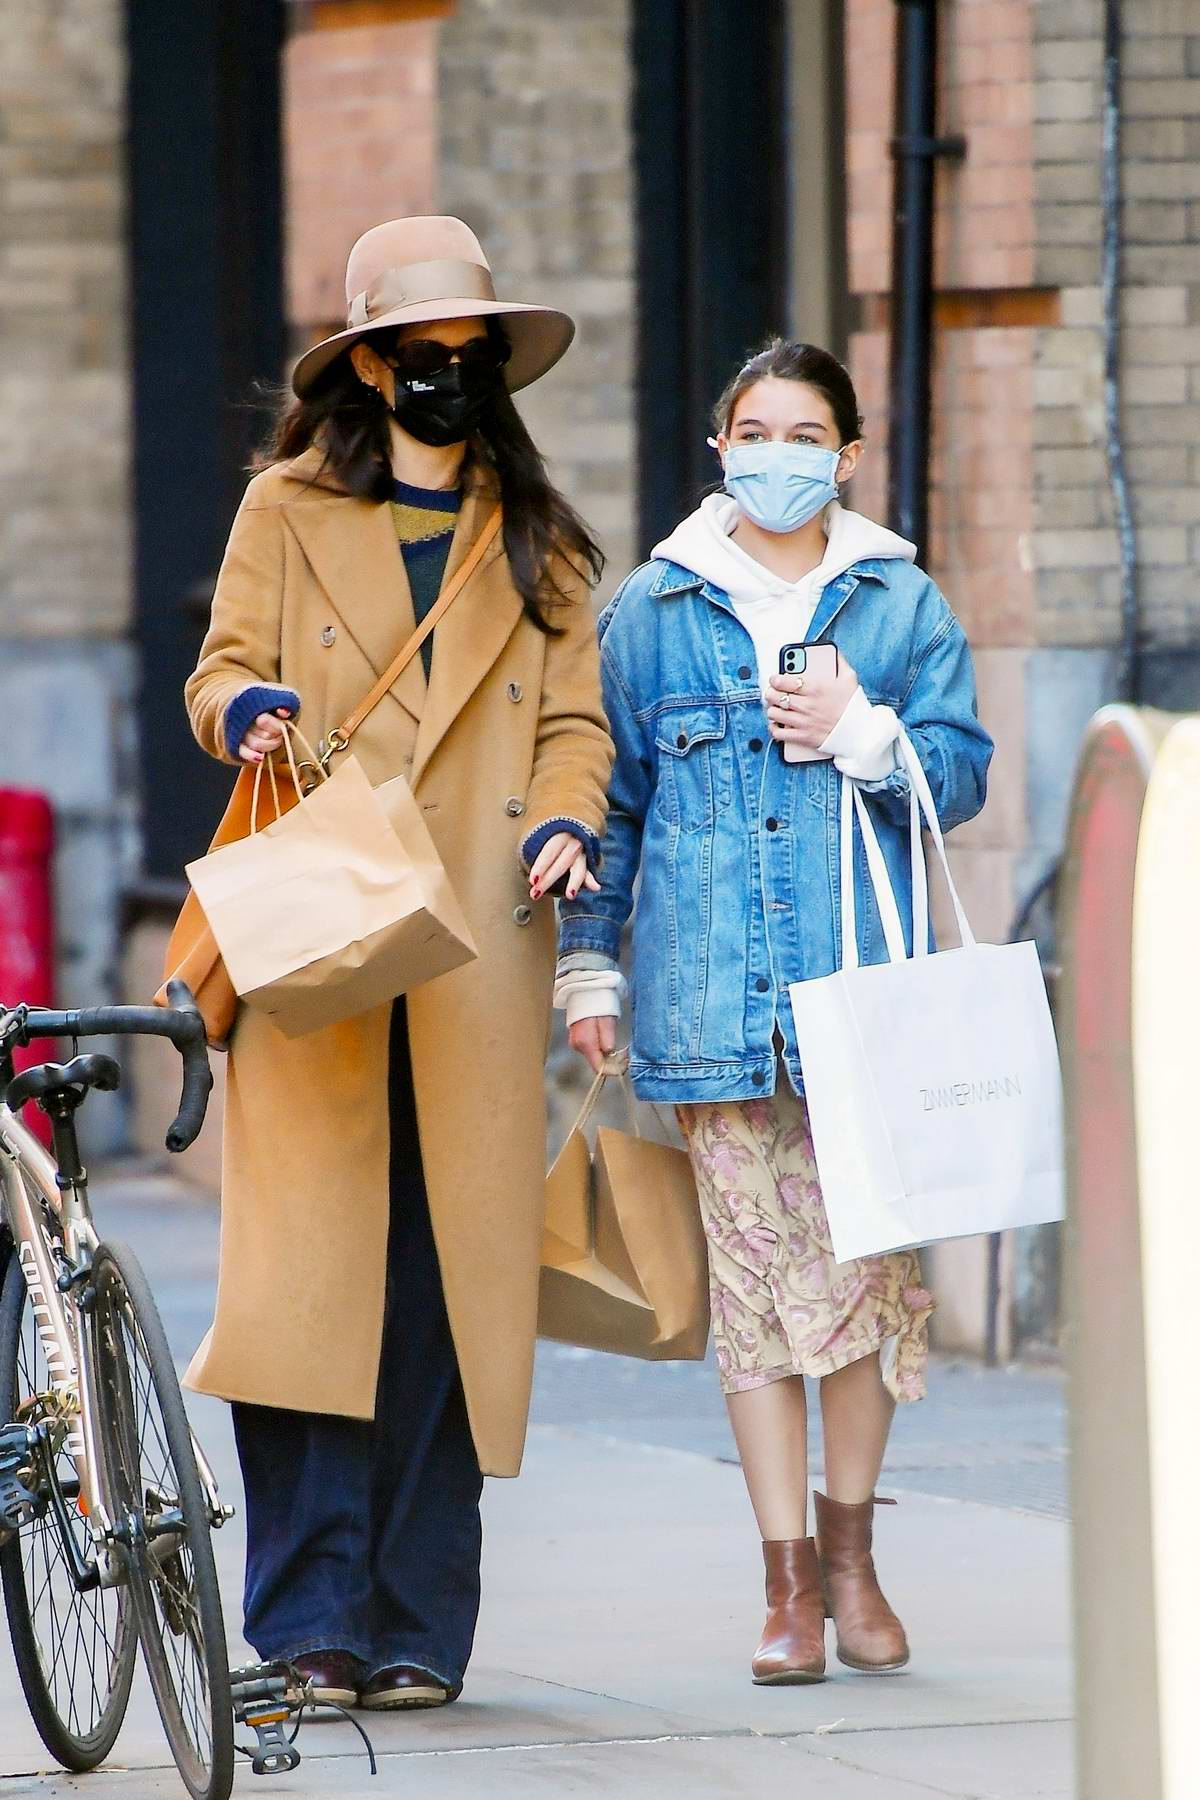 Katie Holmes and Suri Cruise pick up lunch from the 'Mercer Kitchen' in New York City